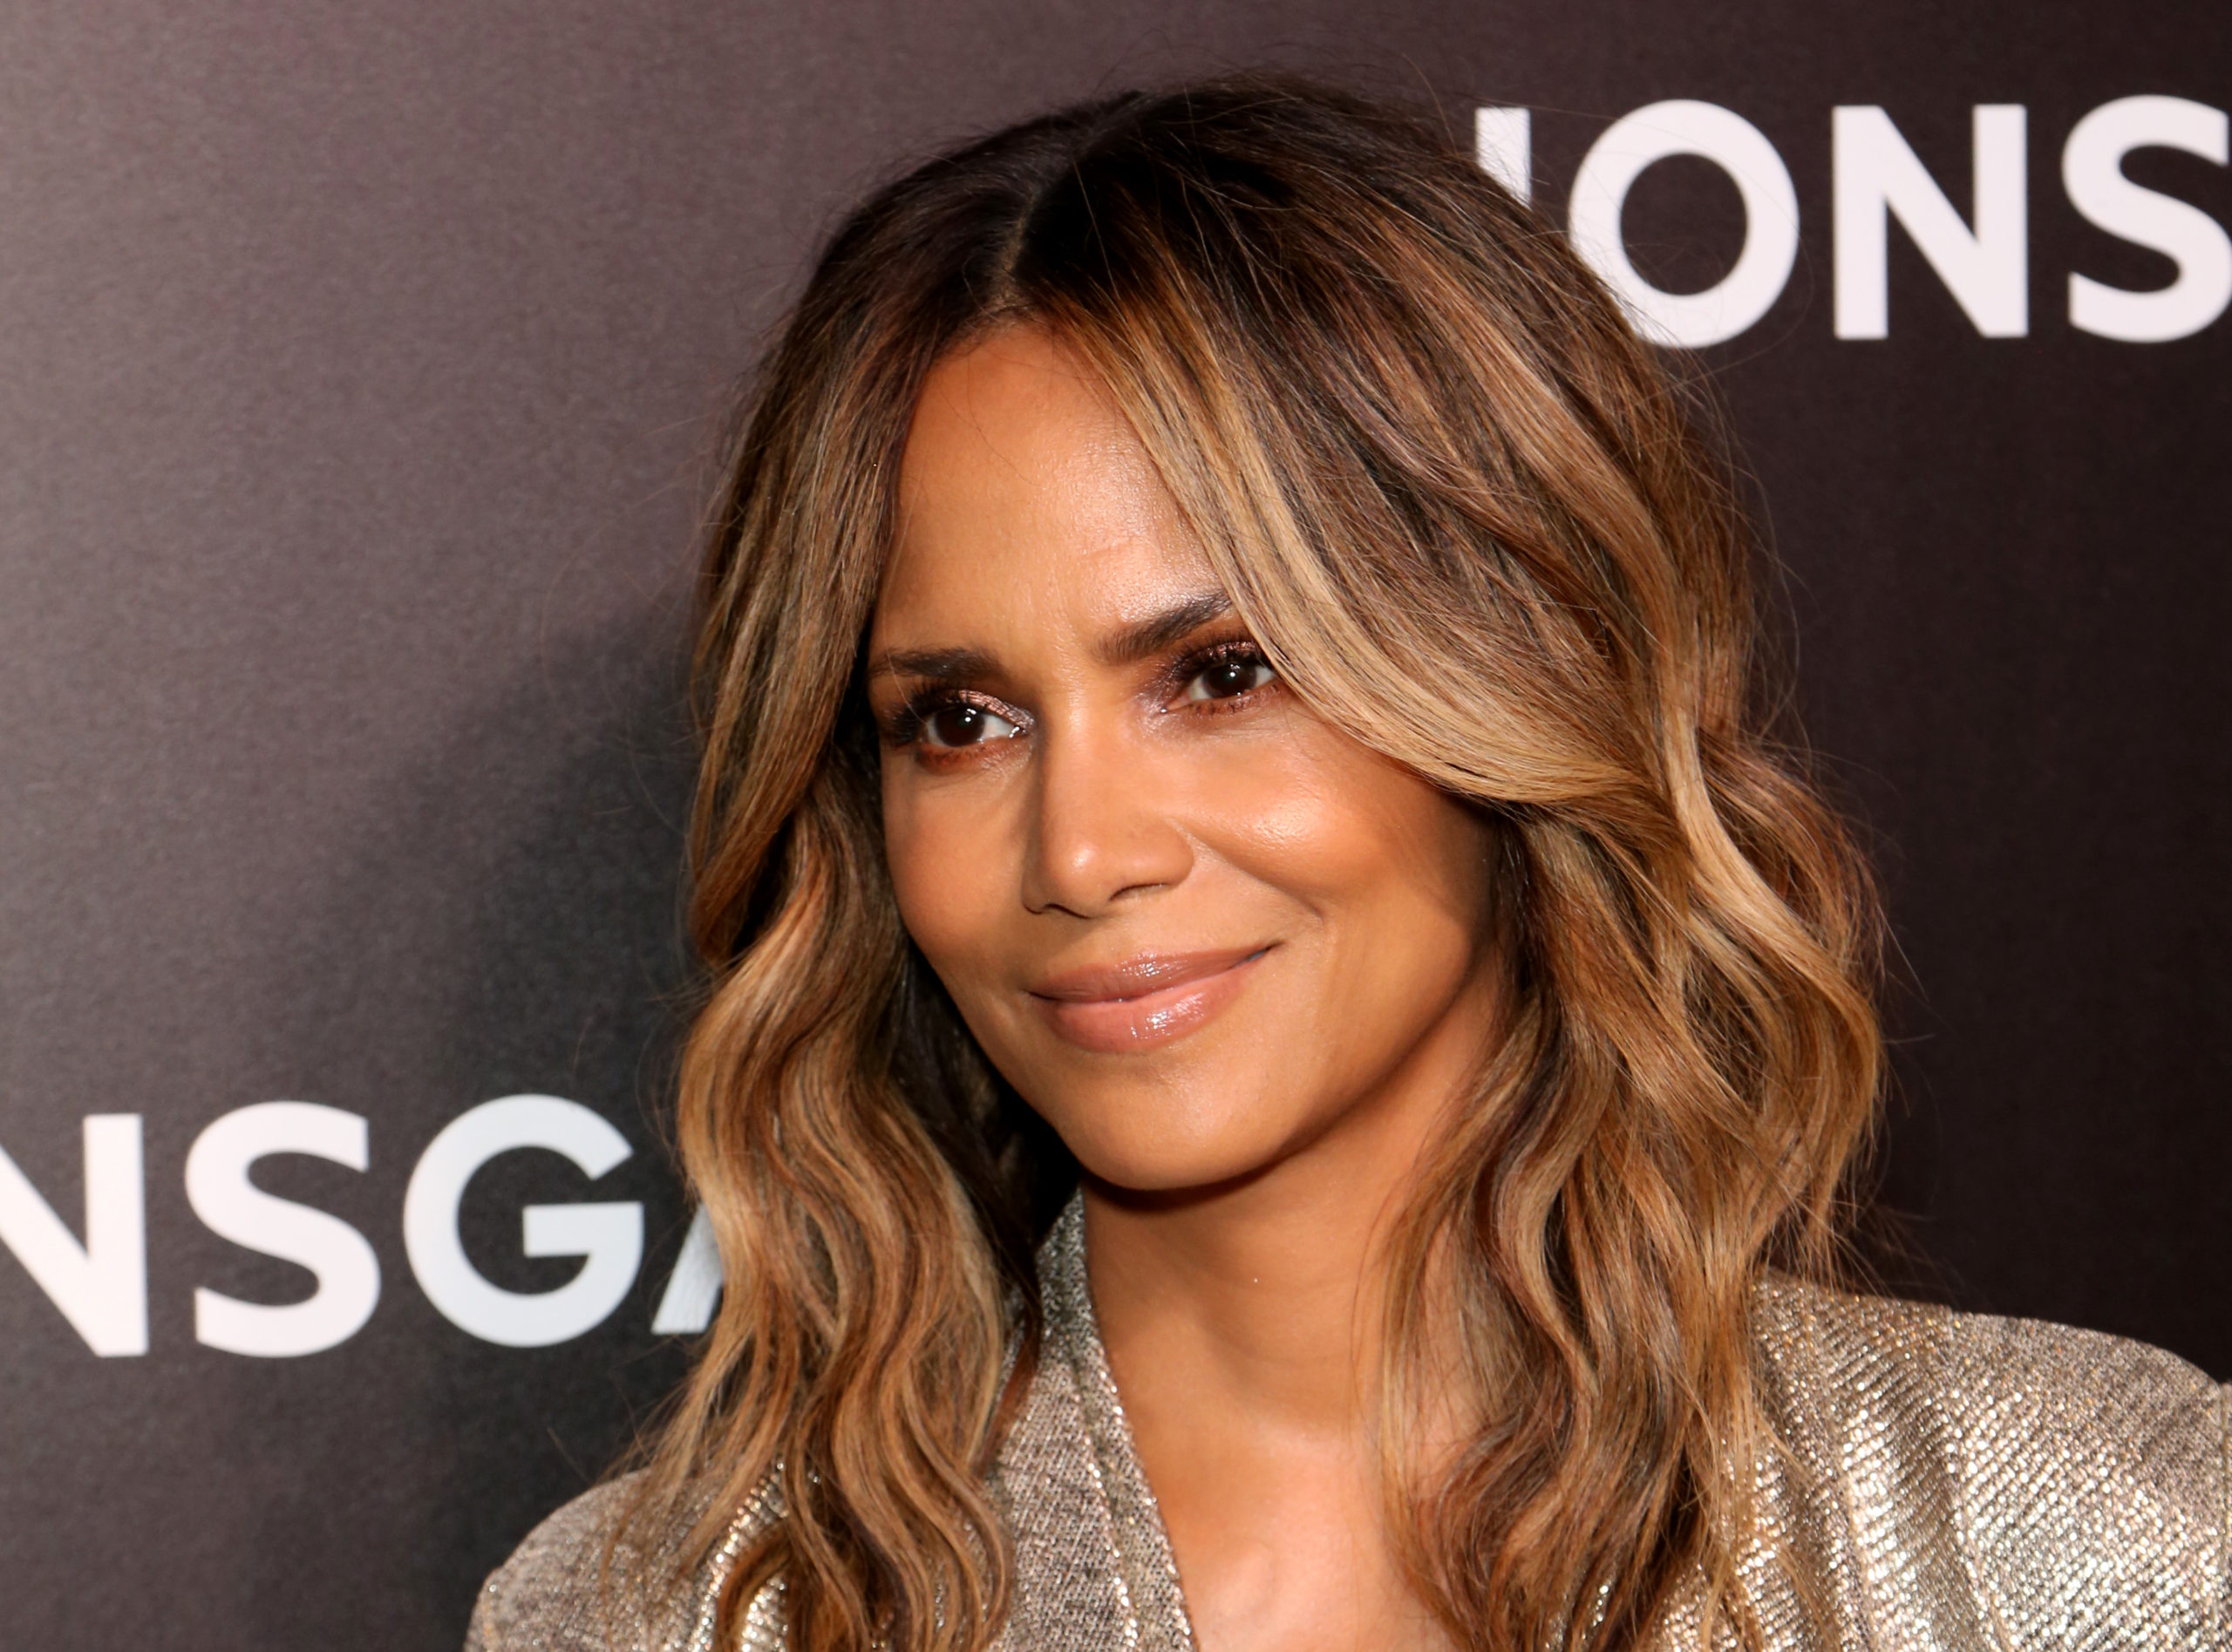 Halle Berry pulls out of playing transgender man in upcoming film